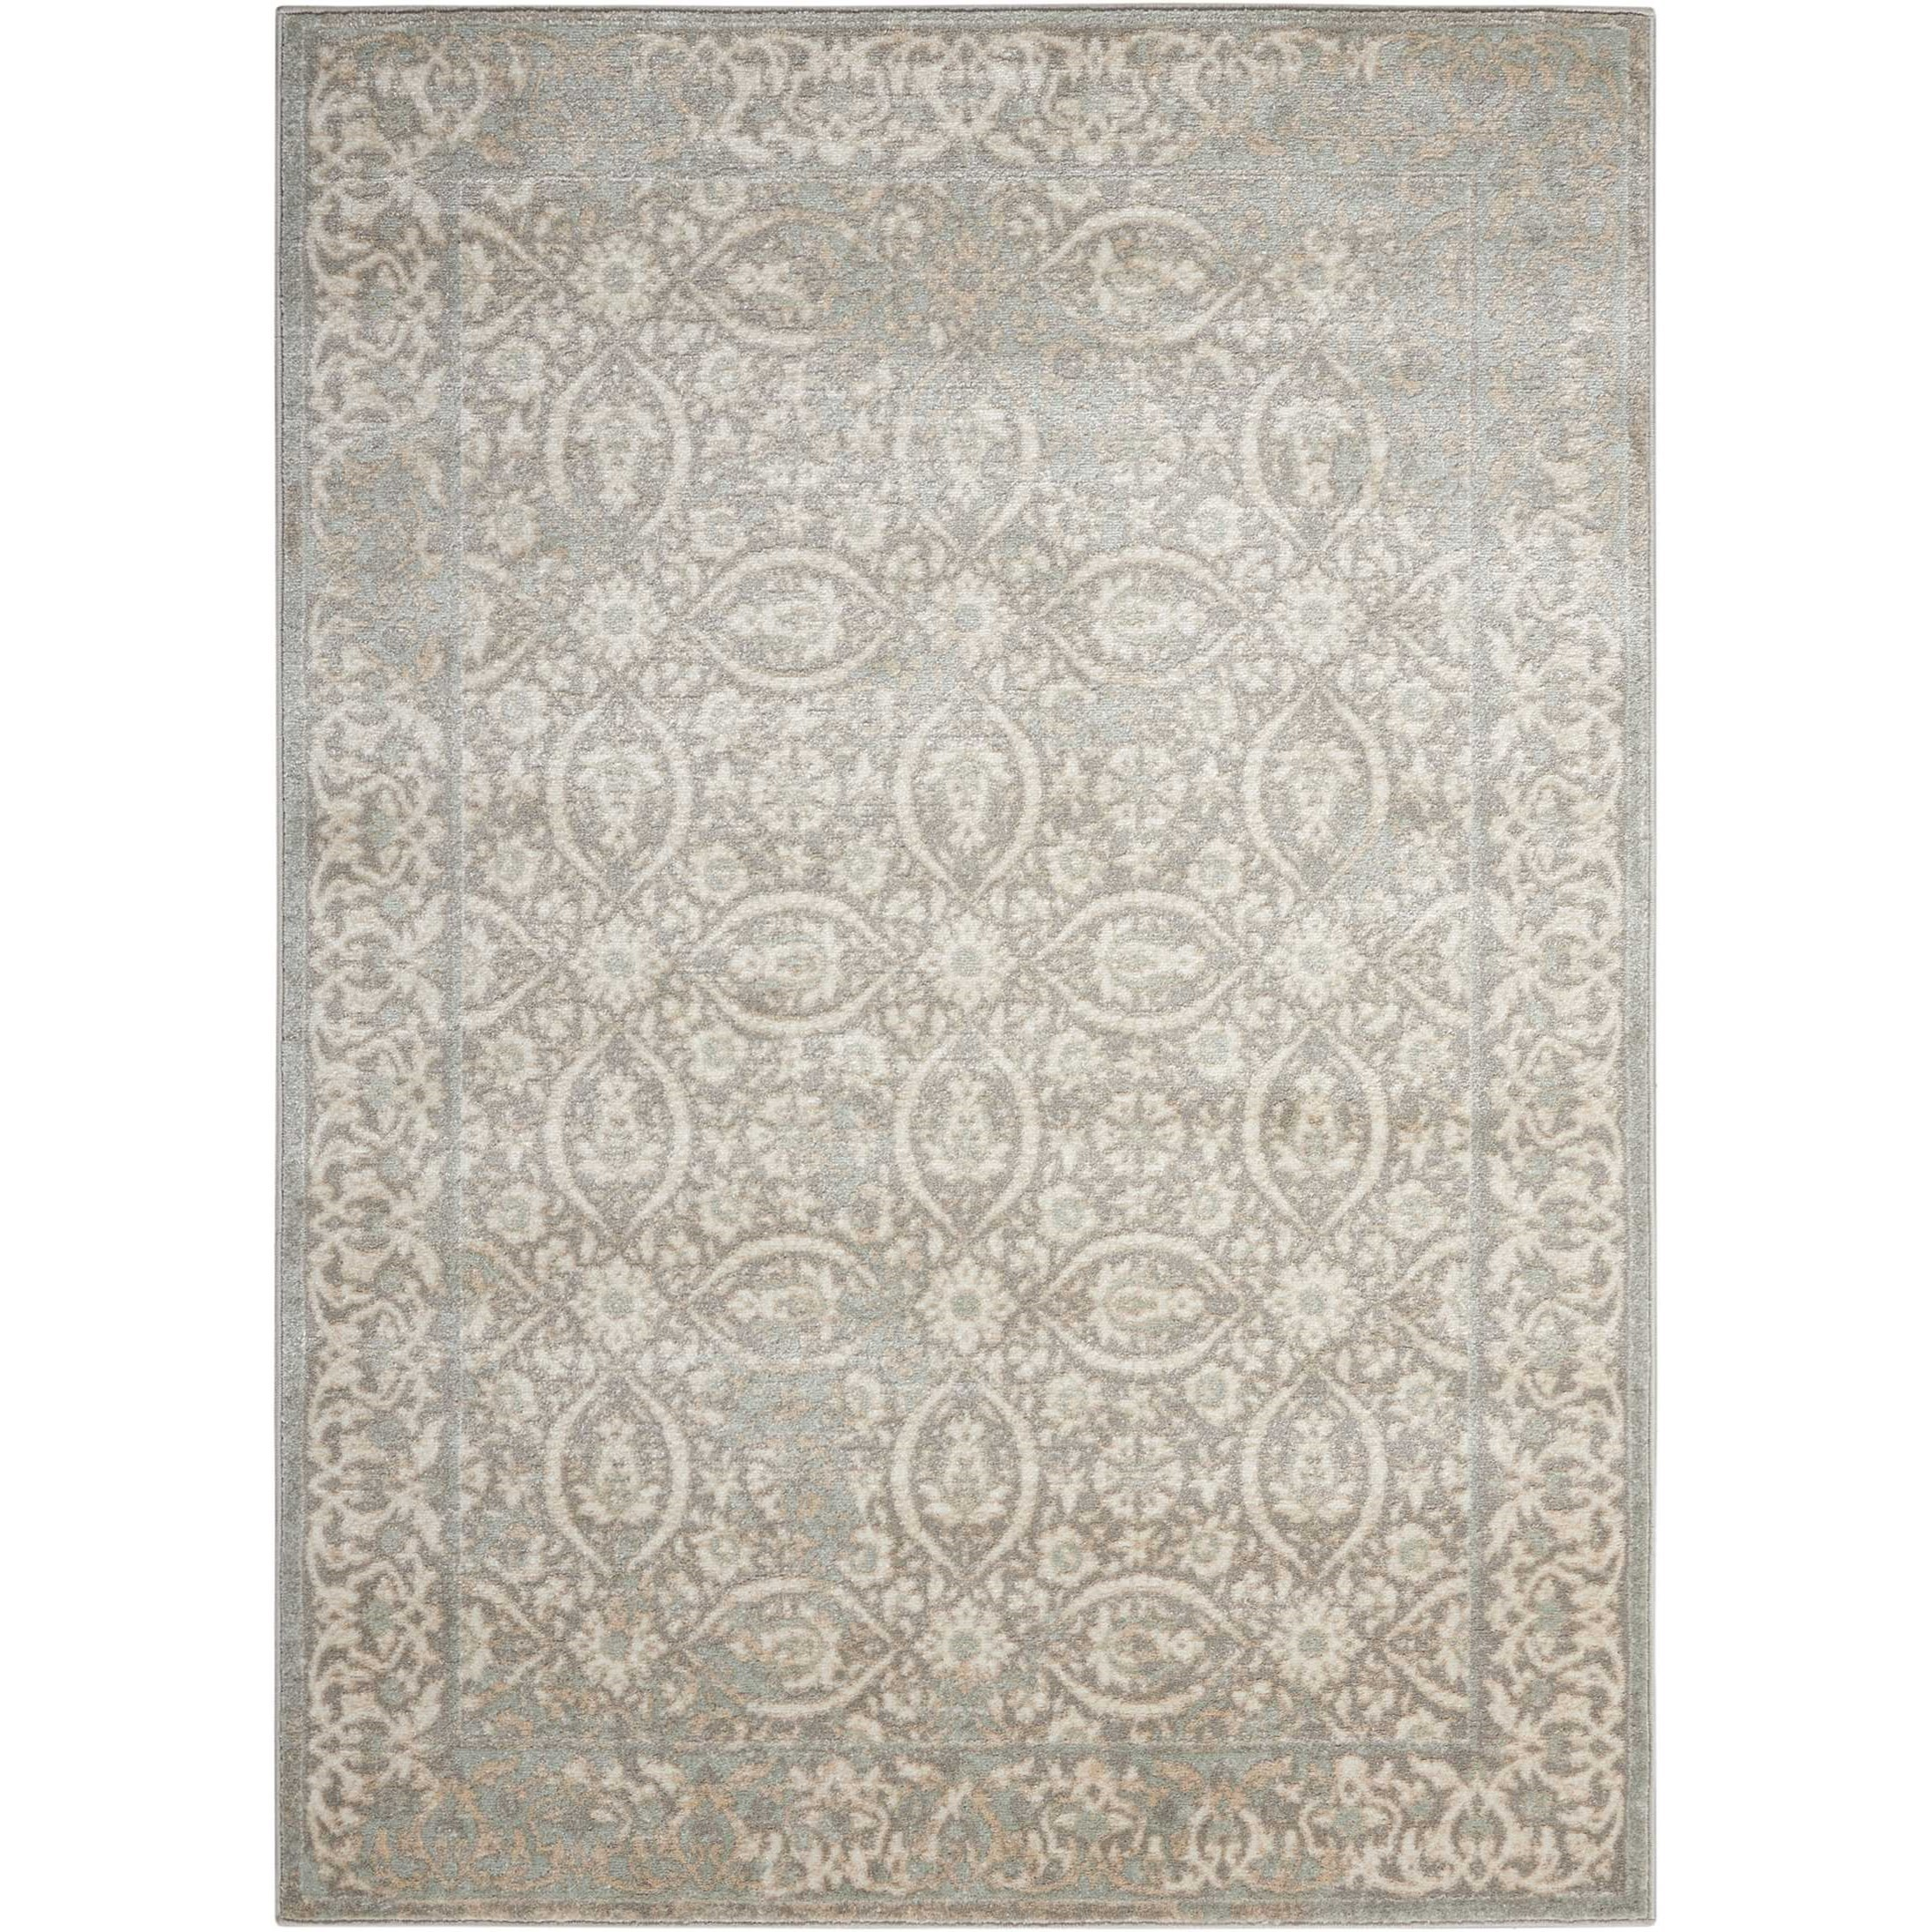 """Euphoria 6'7"""" X 9'6"""" Grey Rug by Nourison at Home Collections Furniture"""